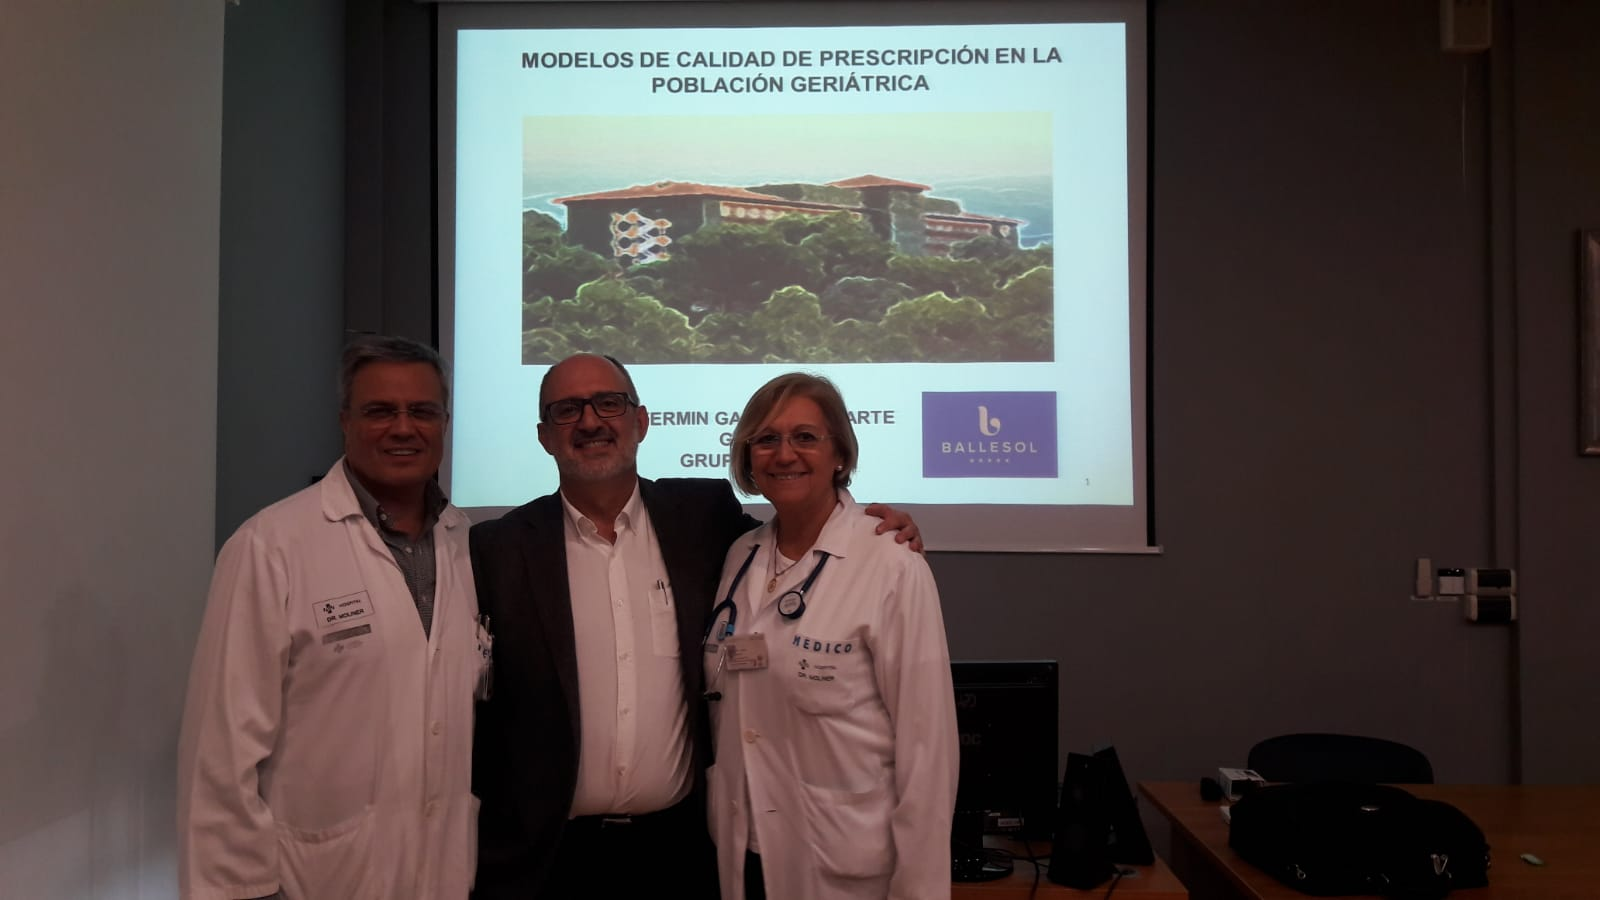 Ballesol sesion clinica Hospital Dr Moliner Valencia